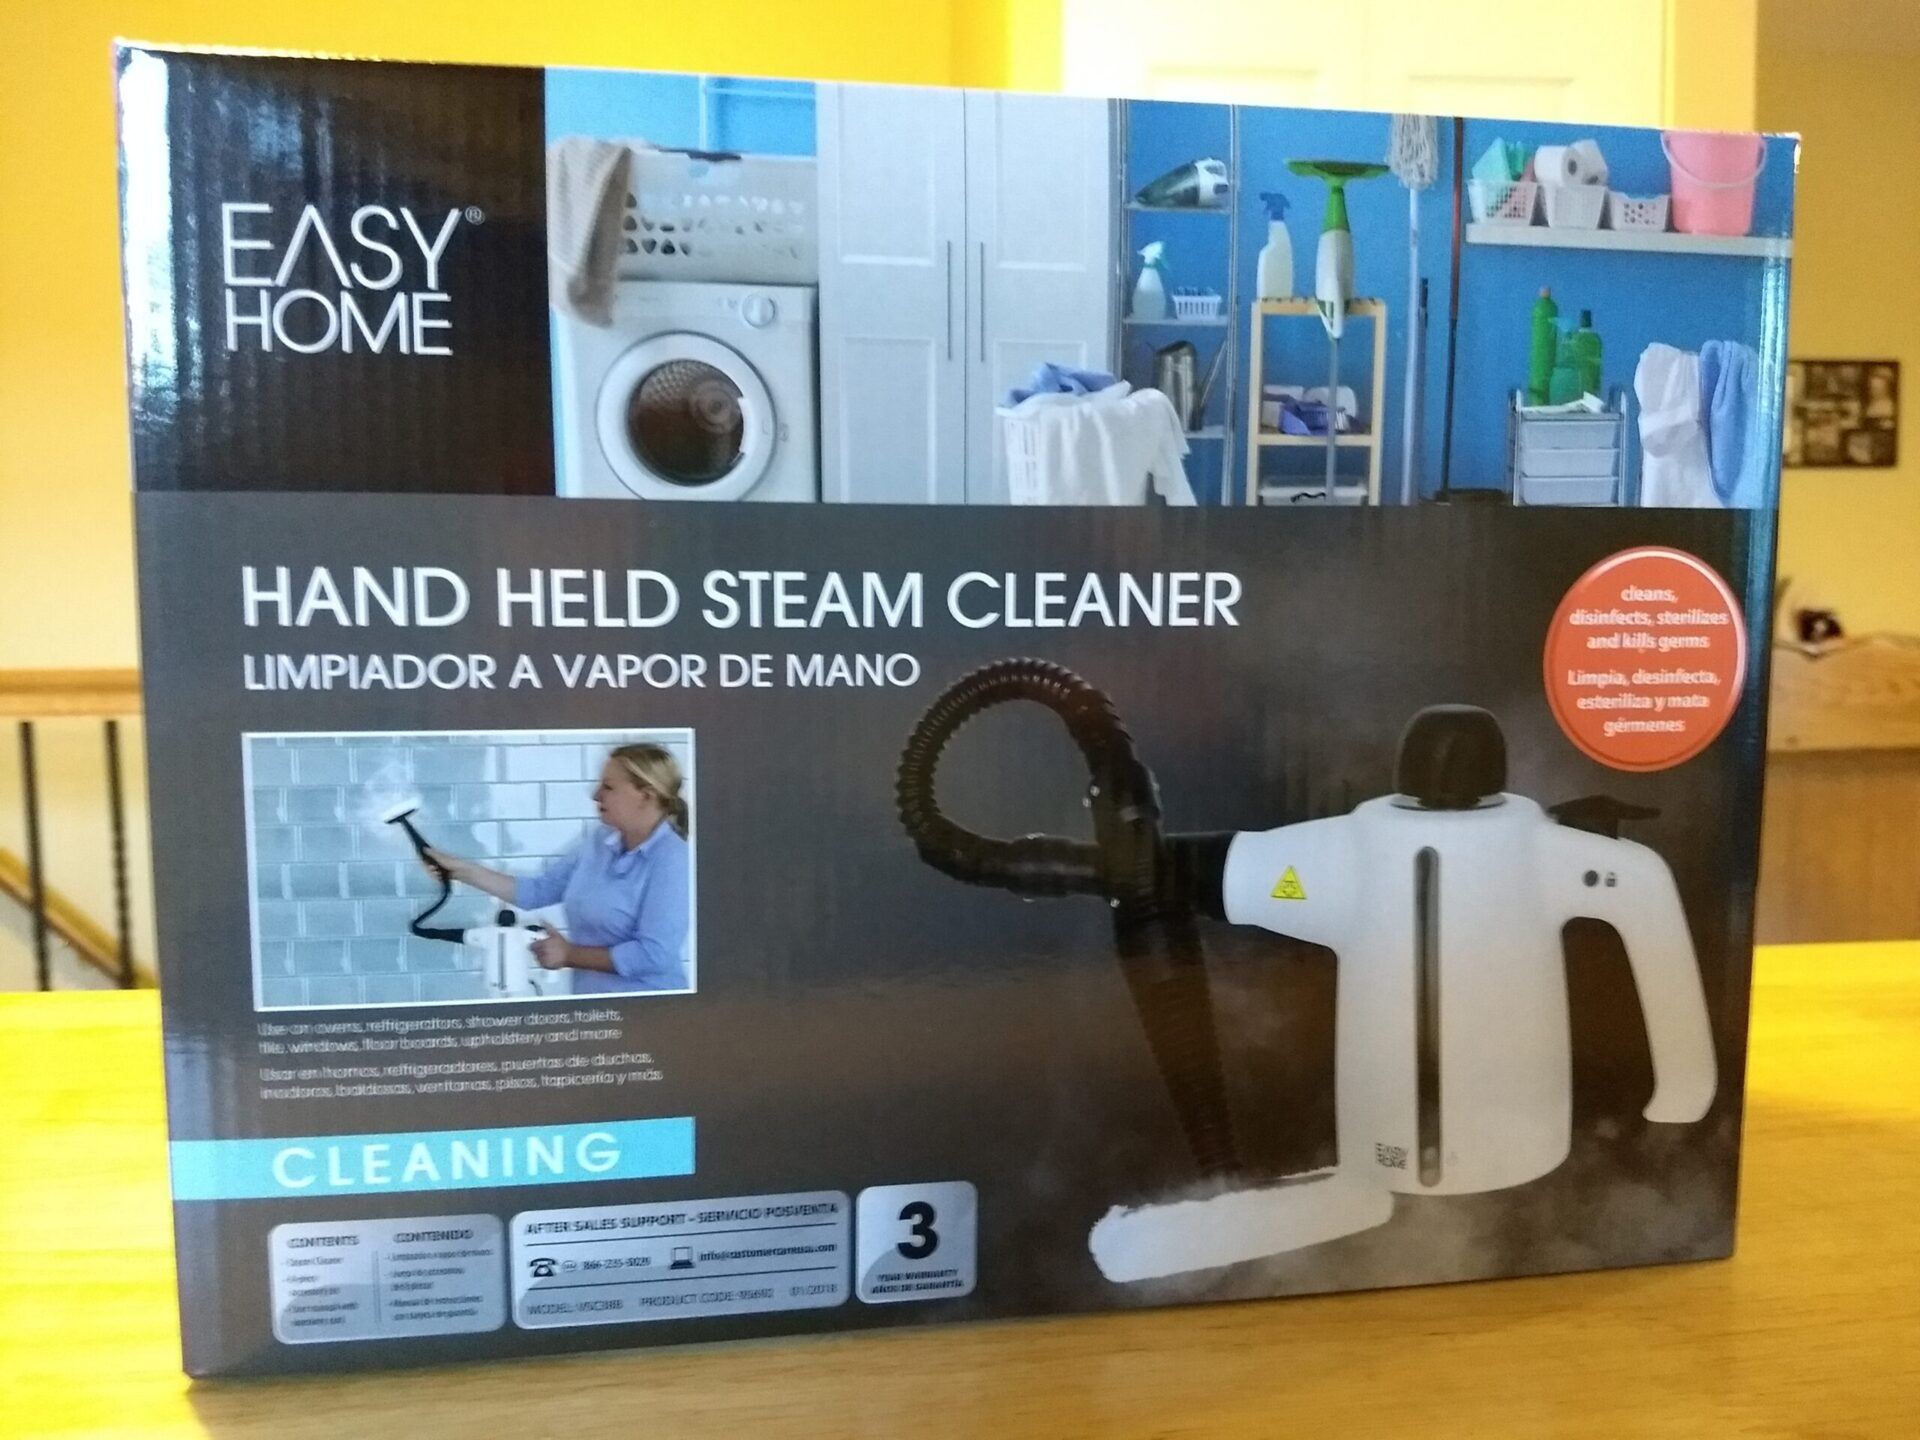 roses img recycled fabric conair closet review steamer steam turbo handheld extremesteam